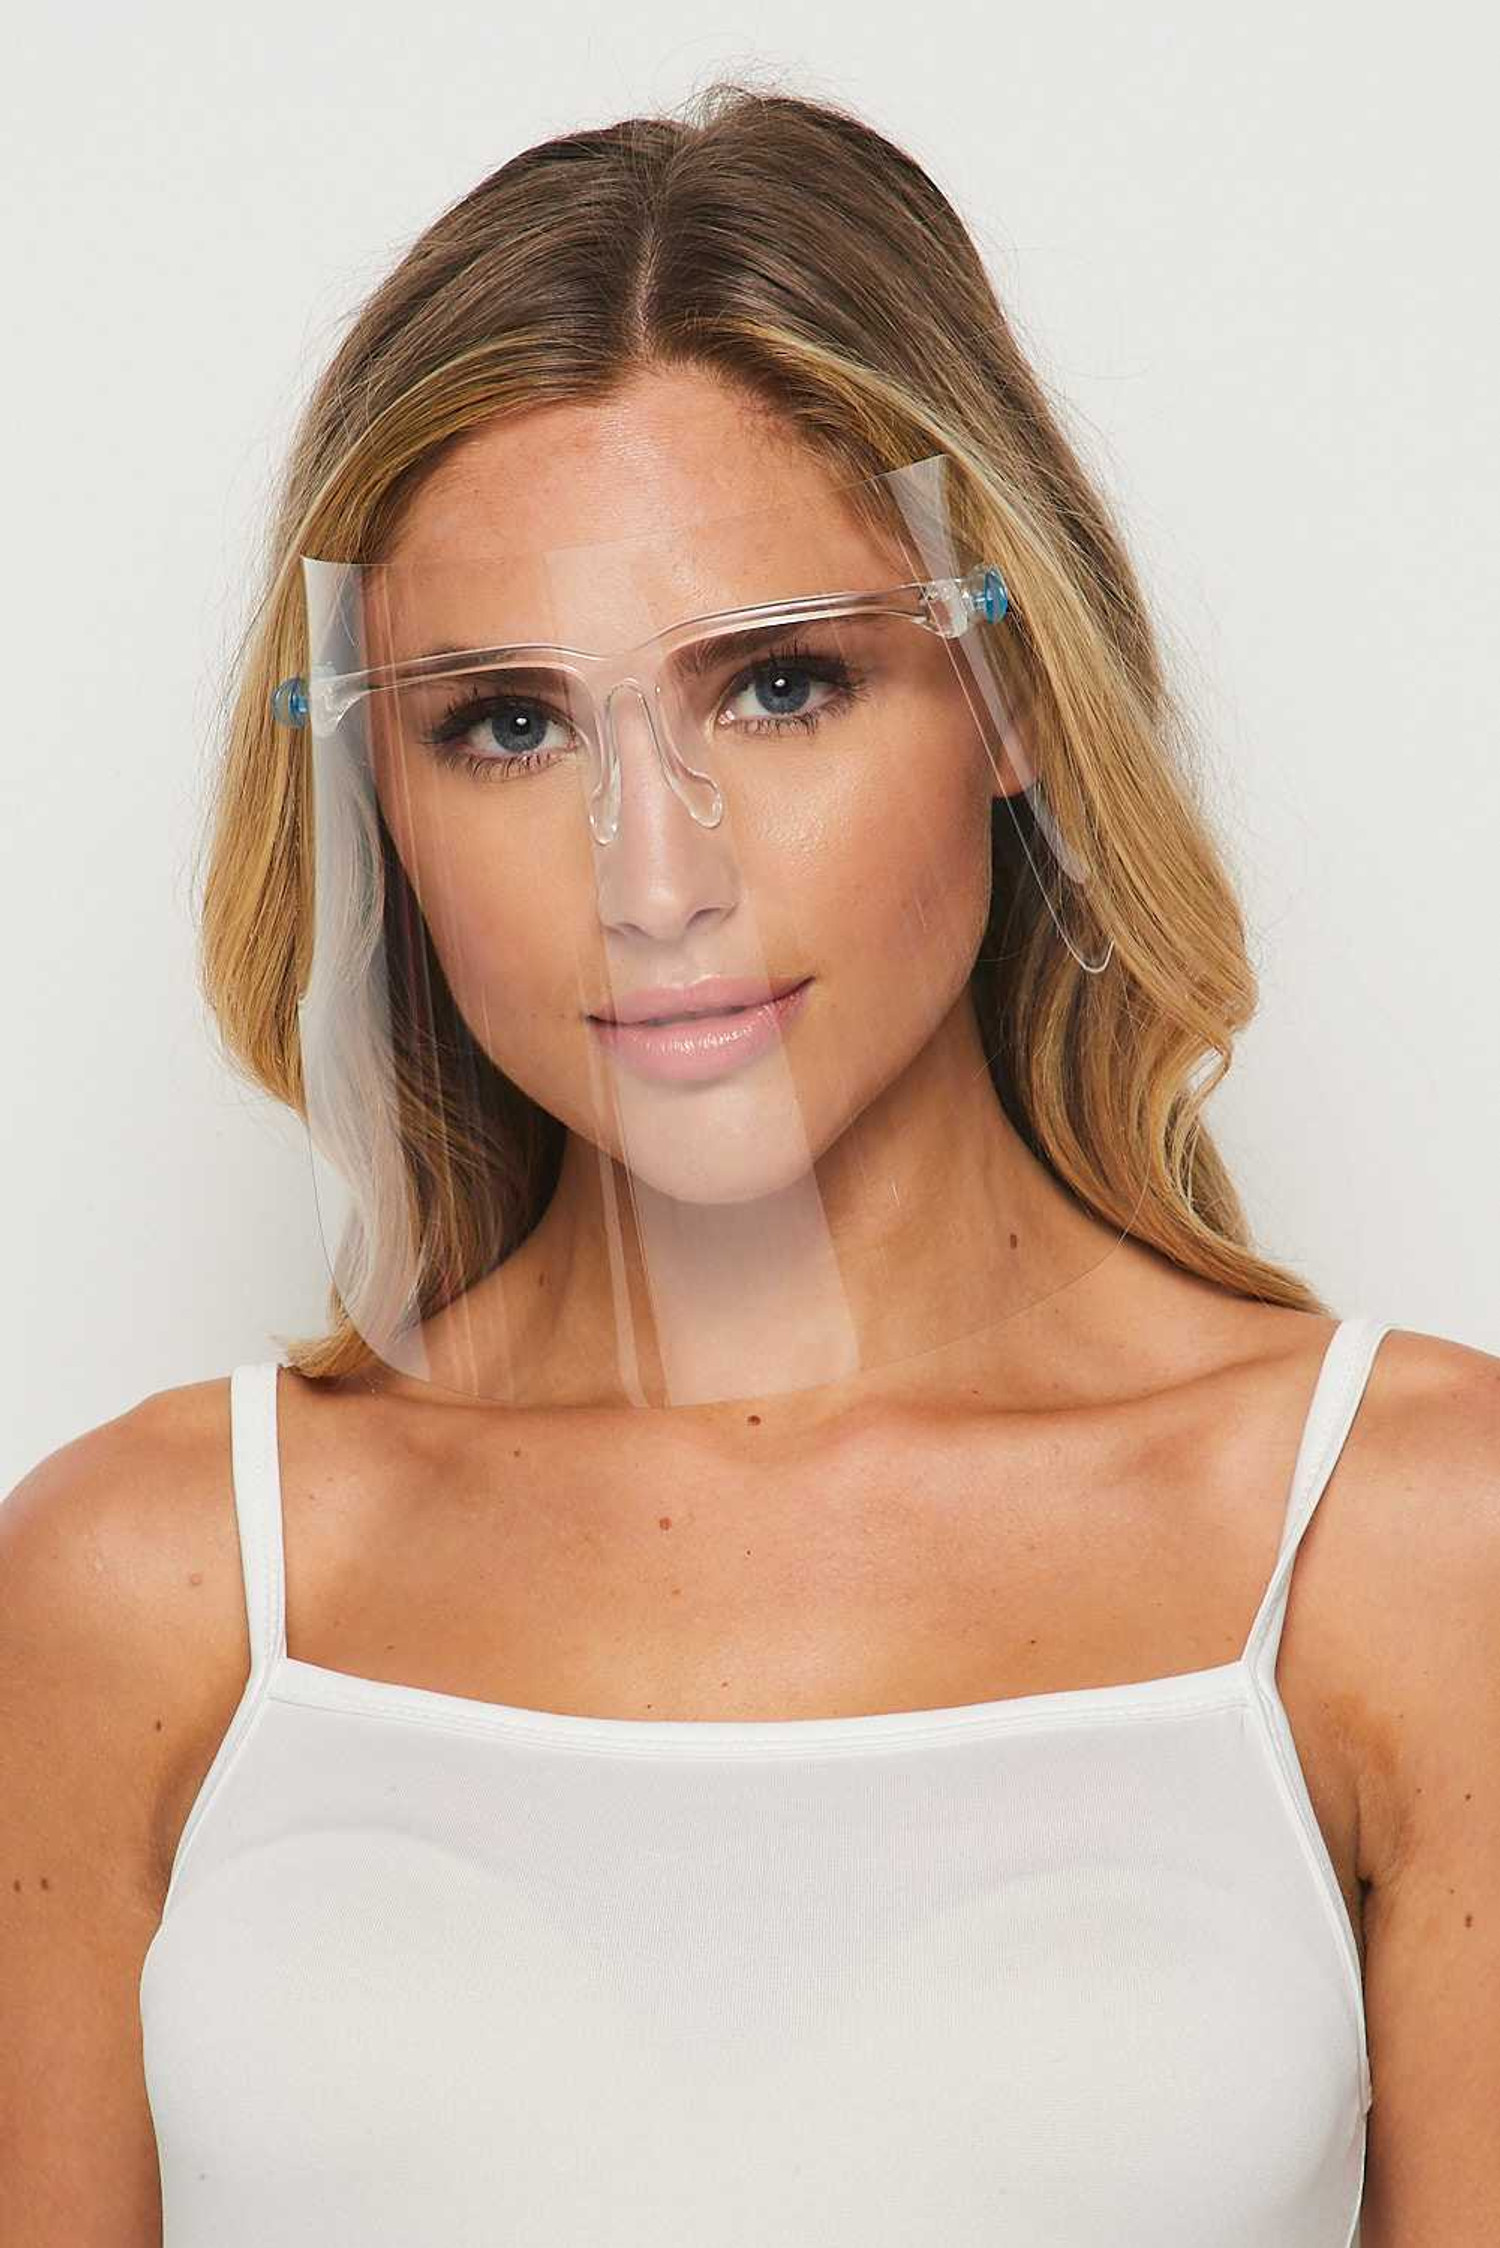 20 Pack - Detachable Full Transparent Face Shield - Clear Colored Support Glasses